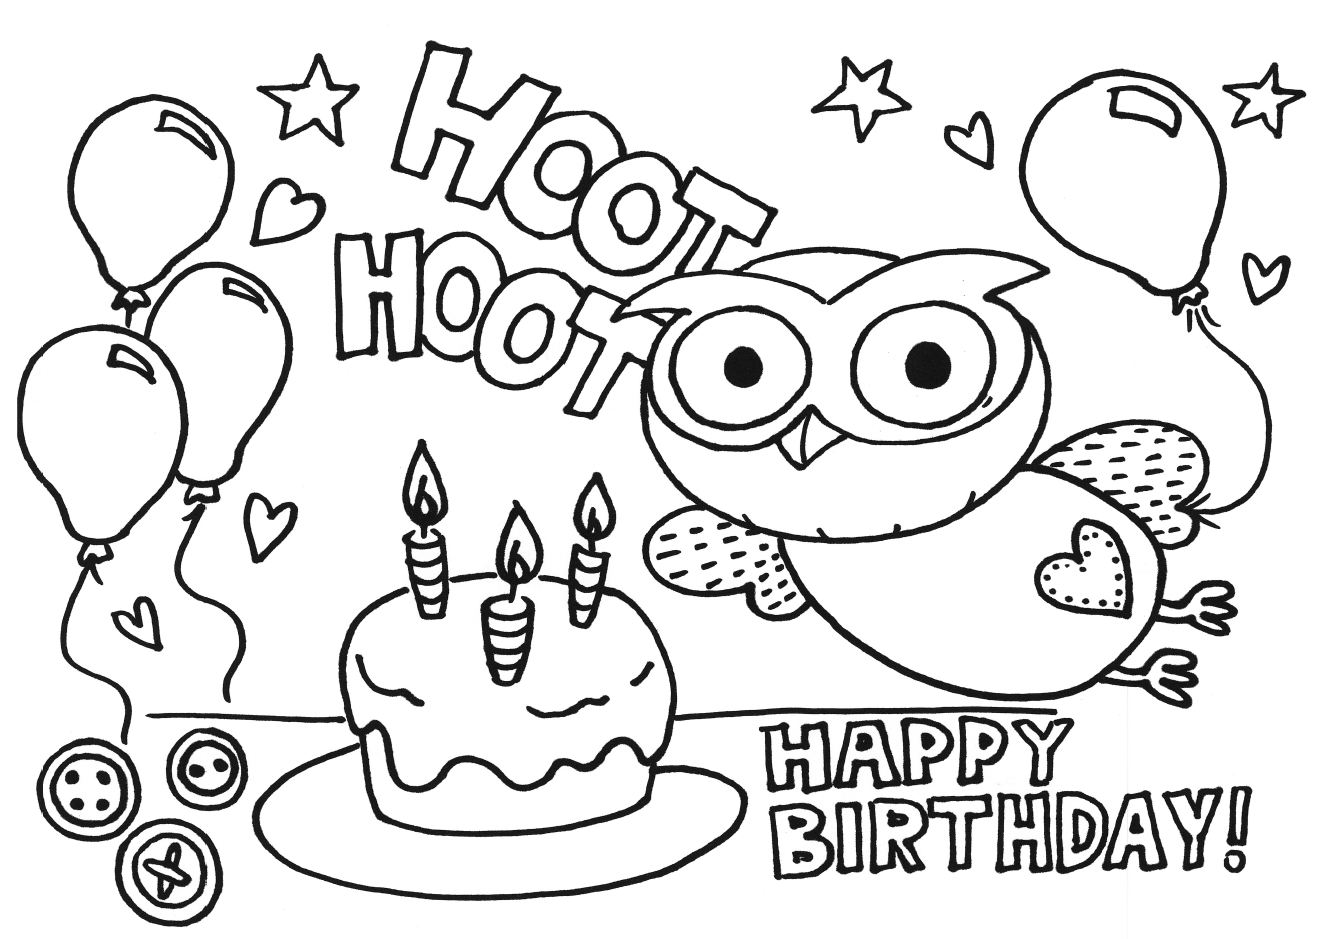 coloring pages brithday - photo#6